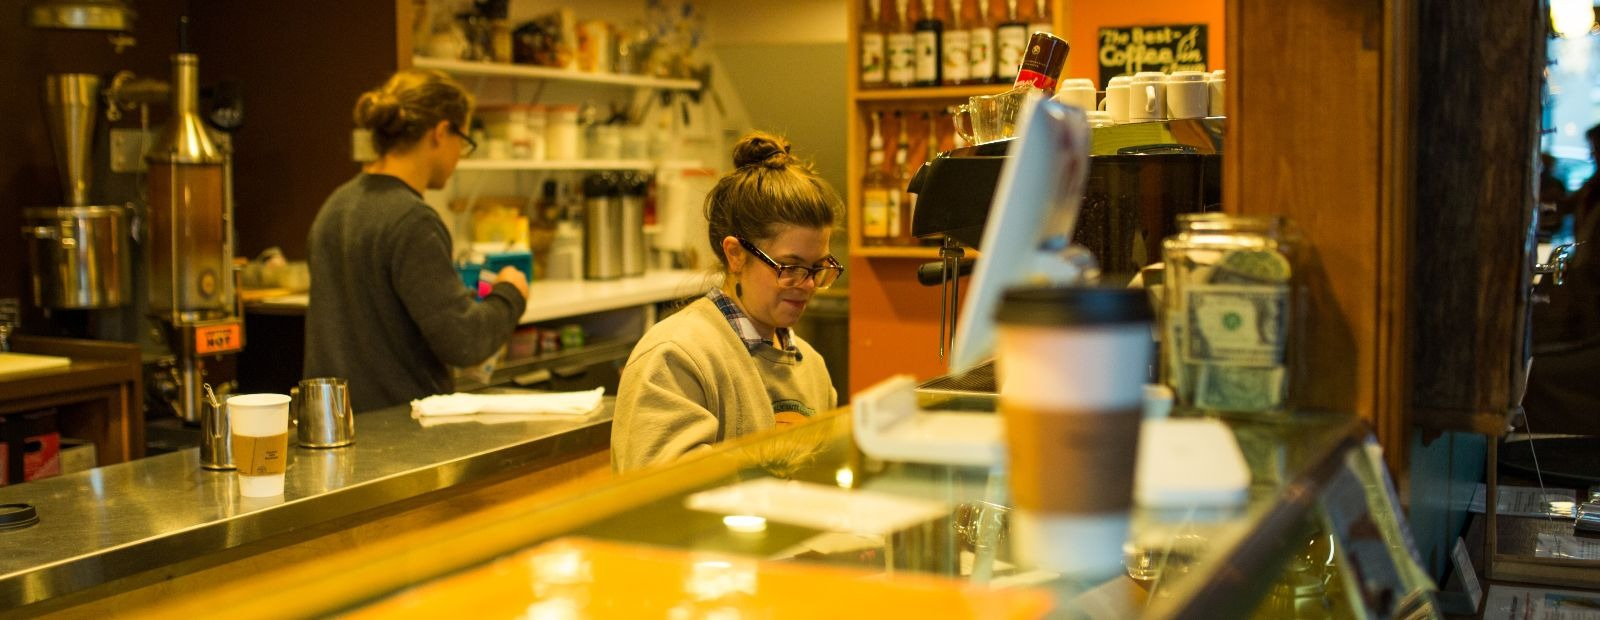 Maggie Bottenfield works on an order at Exquisite Corpse Coffee. <span class='image-credits'>Heather Turner</span>